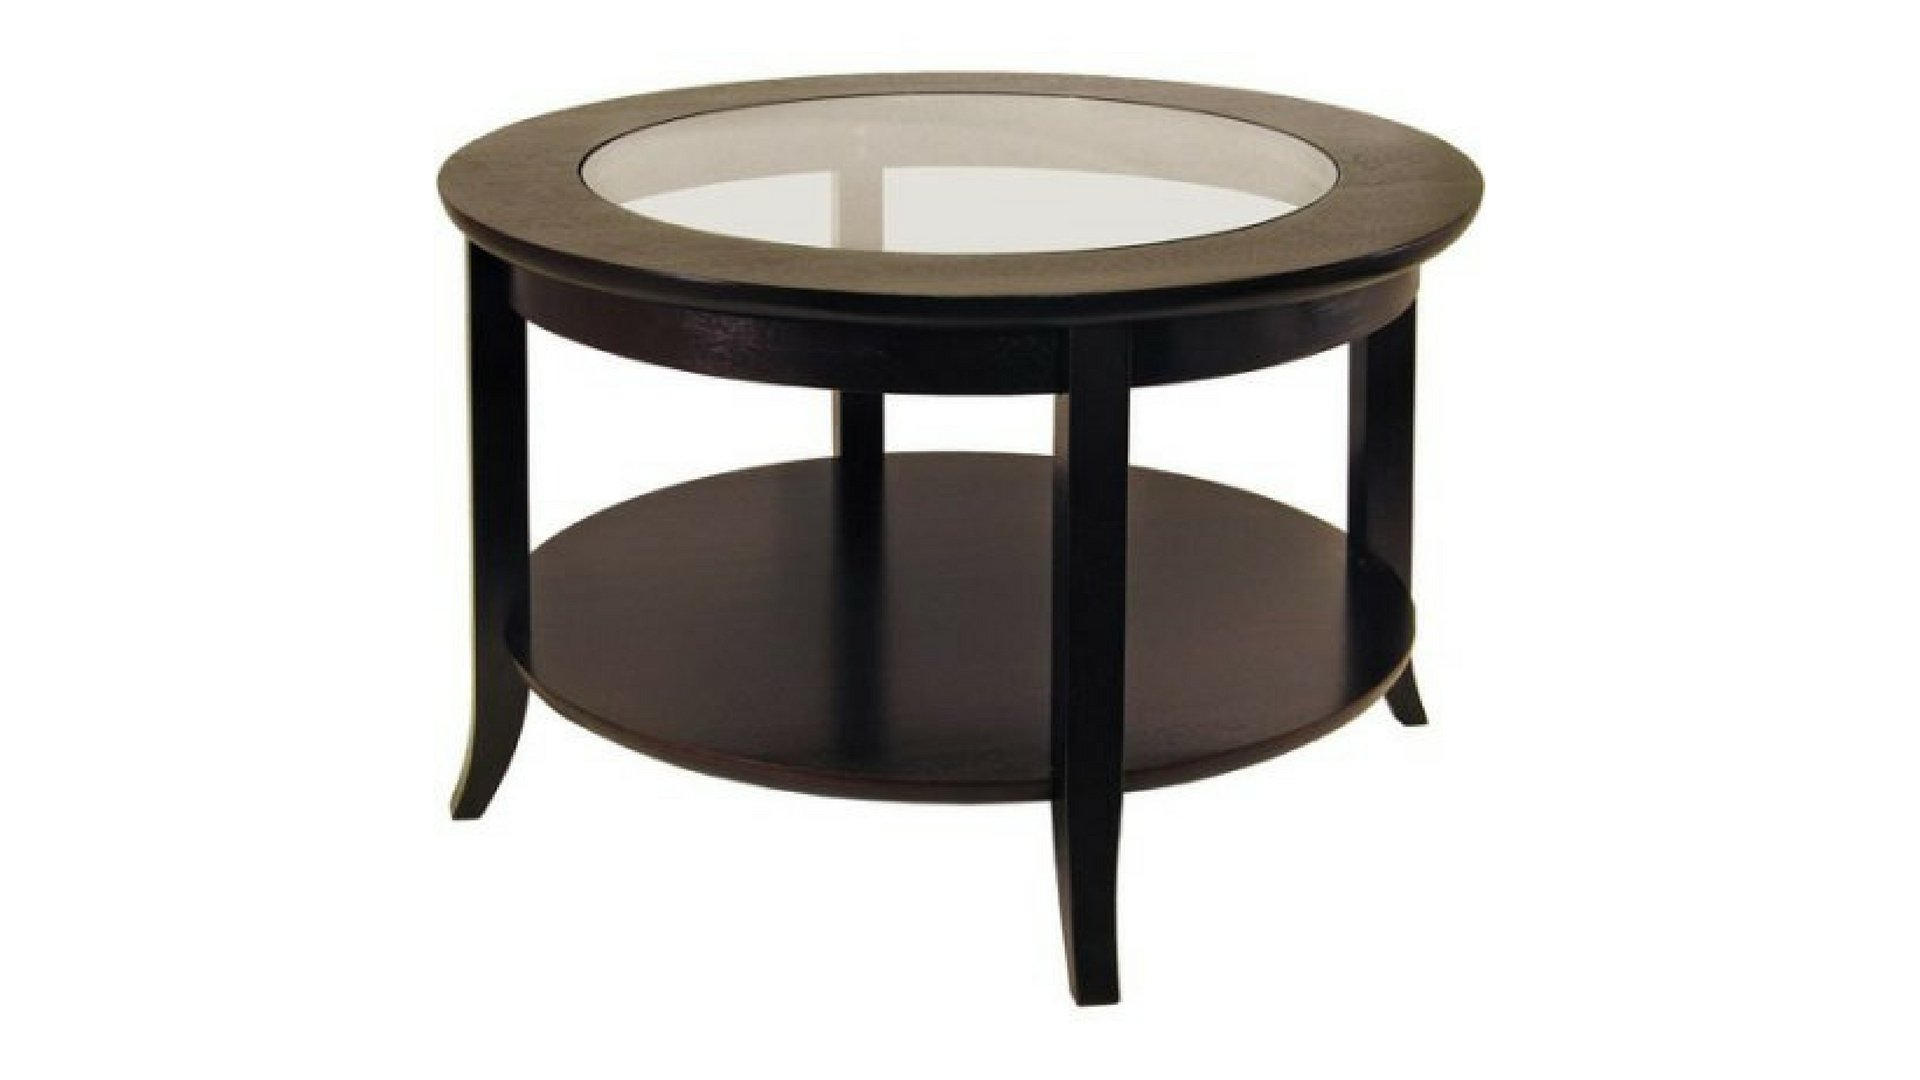 Frenchi Furniture Round Genoa Coffee Table With Glass Top, Dark Espresso by Genoa